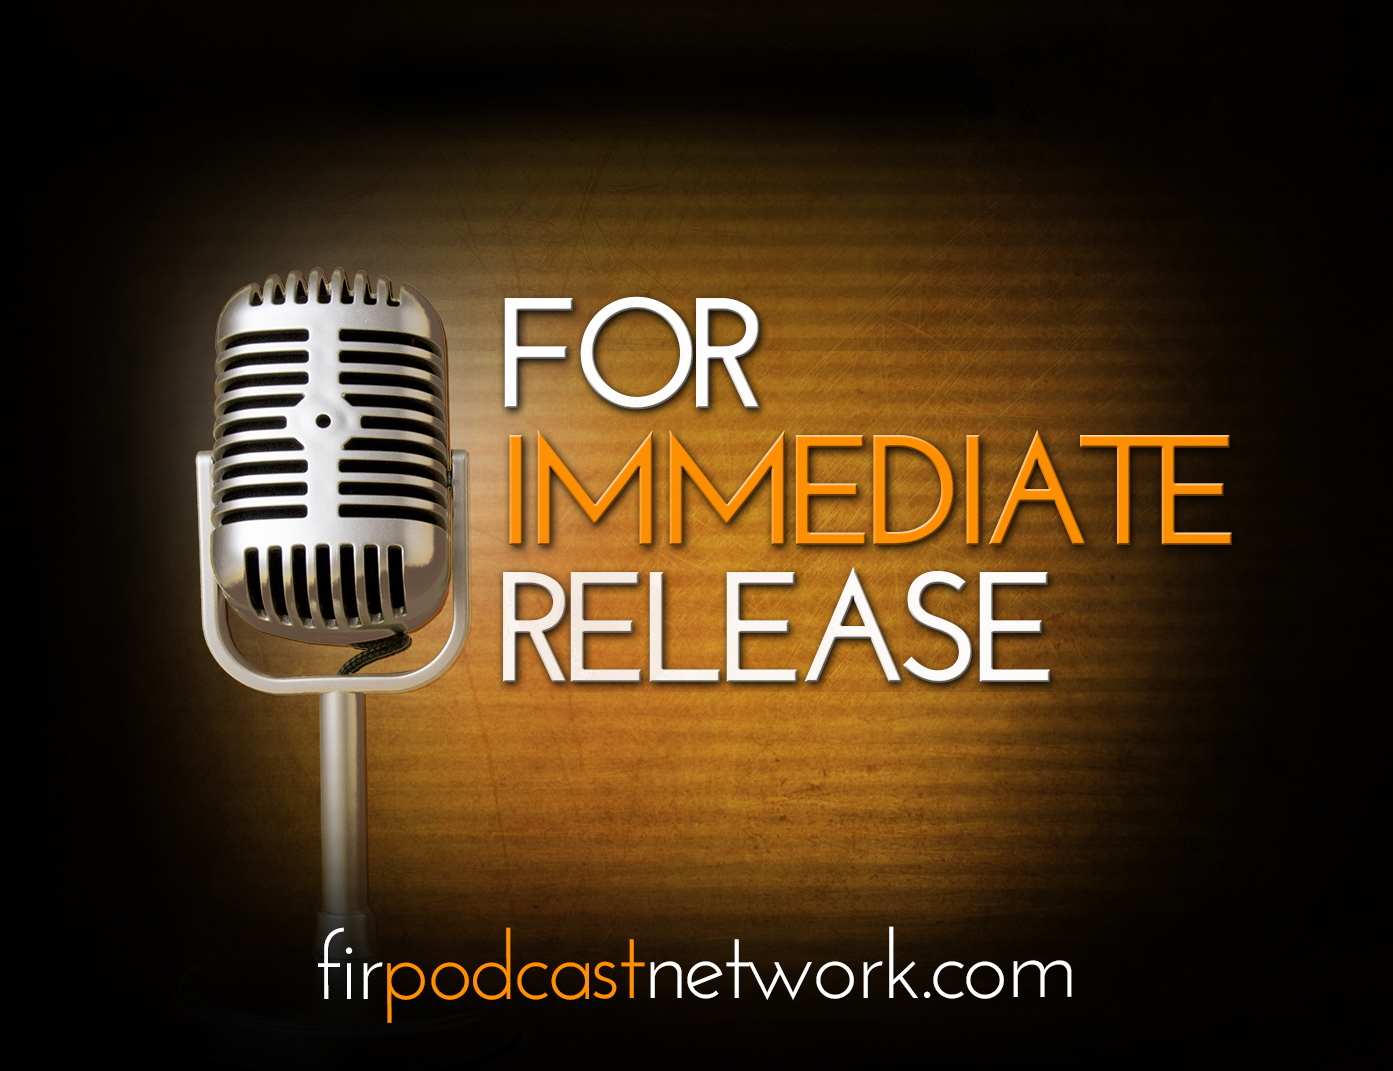 FIR Podcast #79: Ad data audits, Oxford commas, and other key takeaways